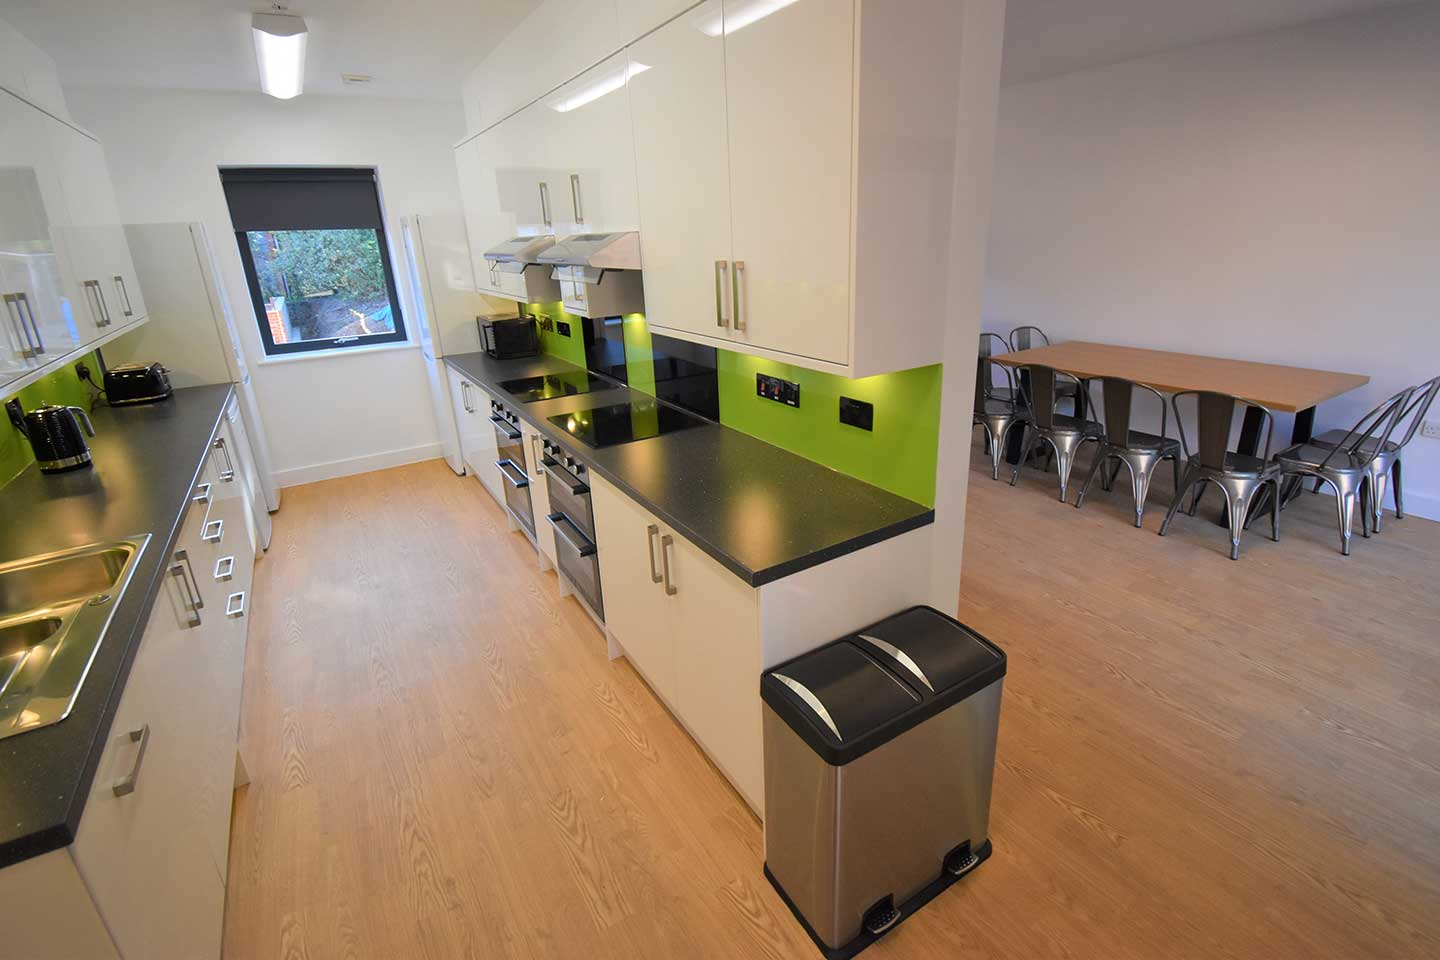 Hillside-Court-kitchen